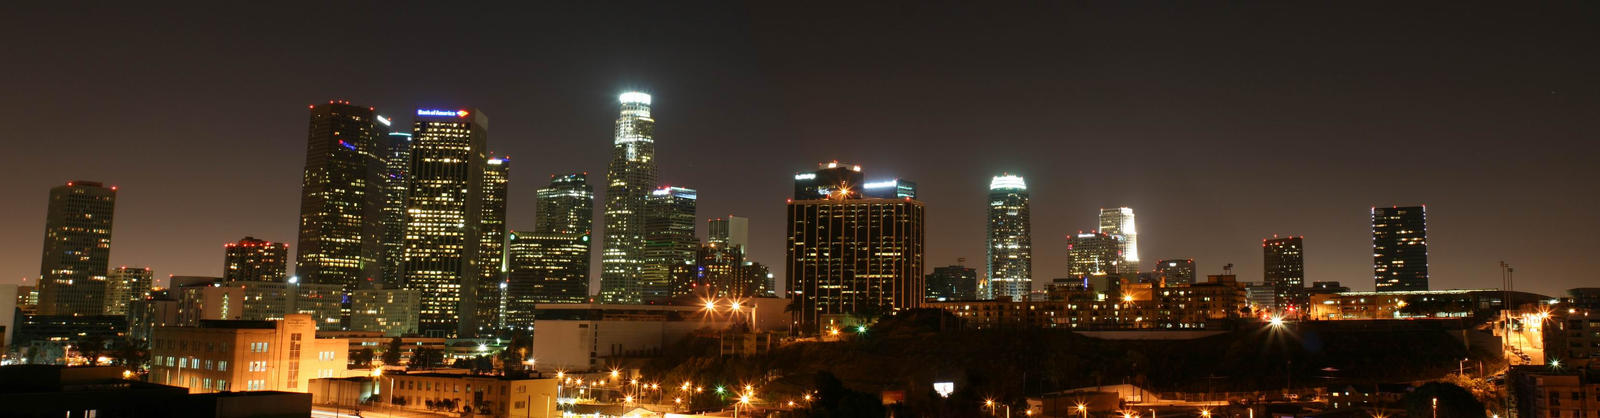 Downtown Los Angeles LA by gogafetish